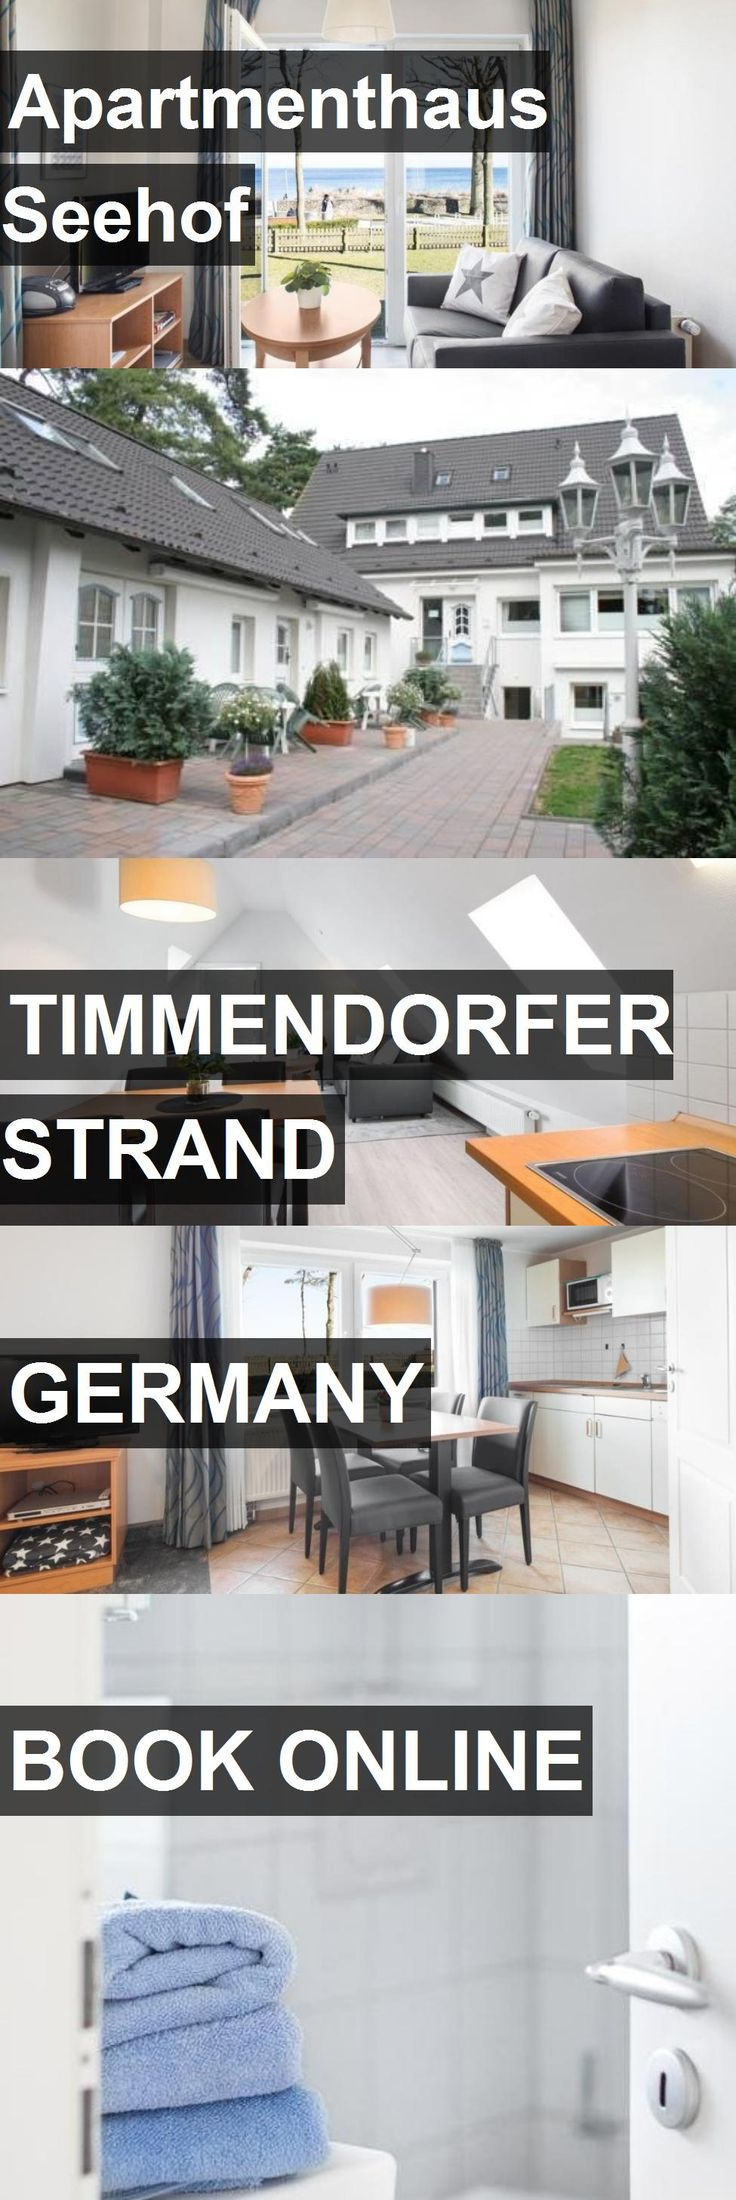 Apartmenthaus Seehof in Timmendorfer Strand, Germany. For more information, photos, reviews and best prices please follow the link. #Germany #TimmendorferStrand #travel #vacation #apartment